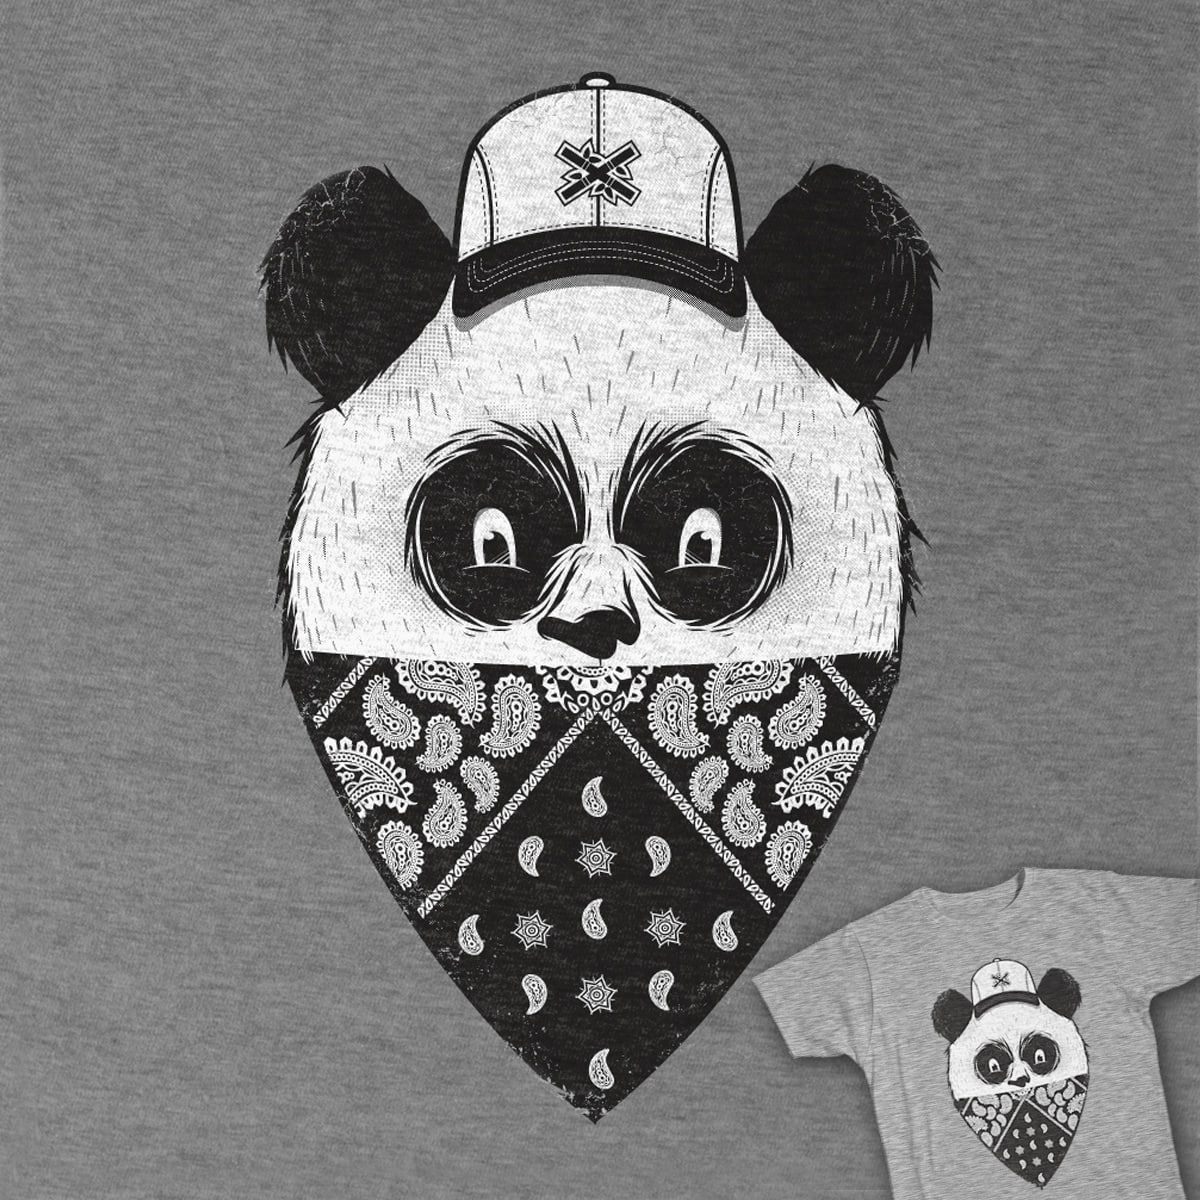 Pandana by gnoks on Threadless